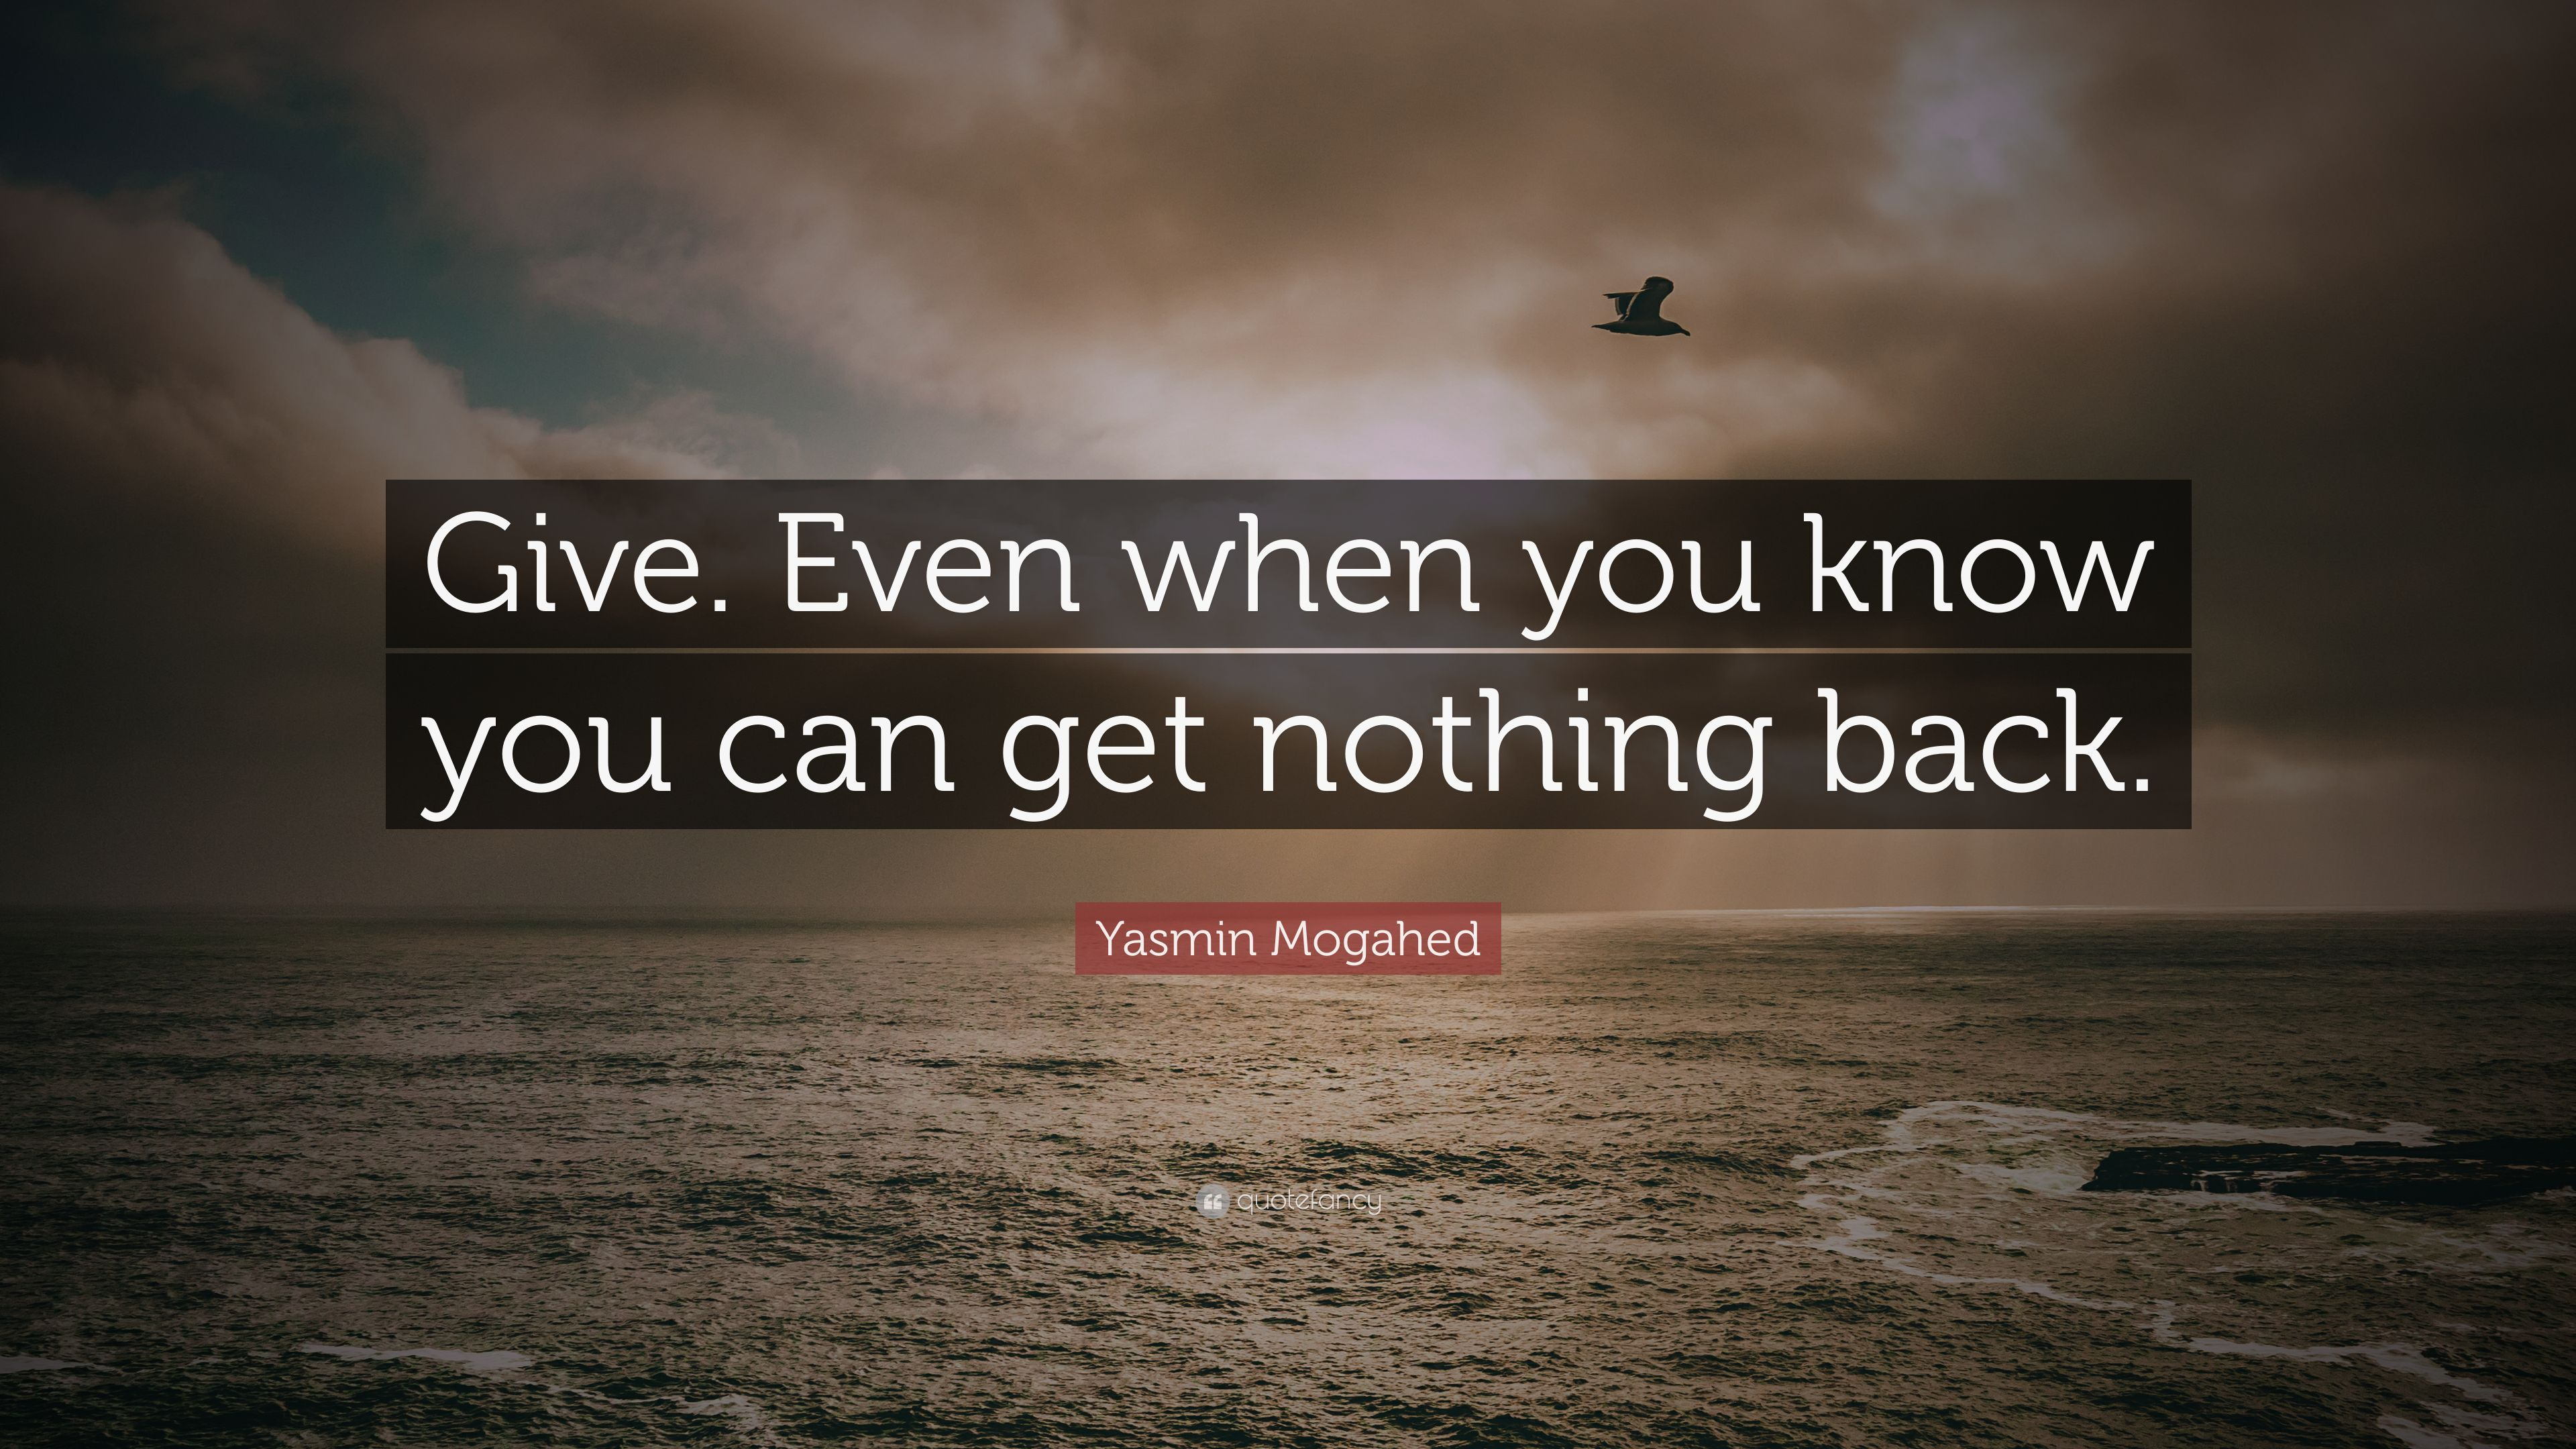 Yasmin Mogahed Quote Give Even When You Know Can Get Nothing This If What Are Doing Is For Beginners Back